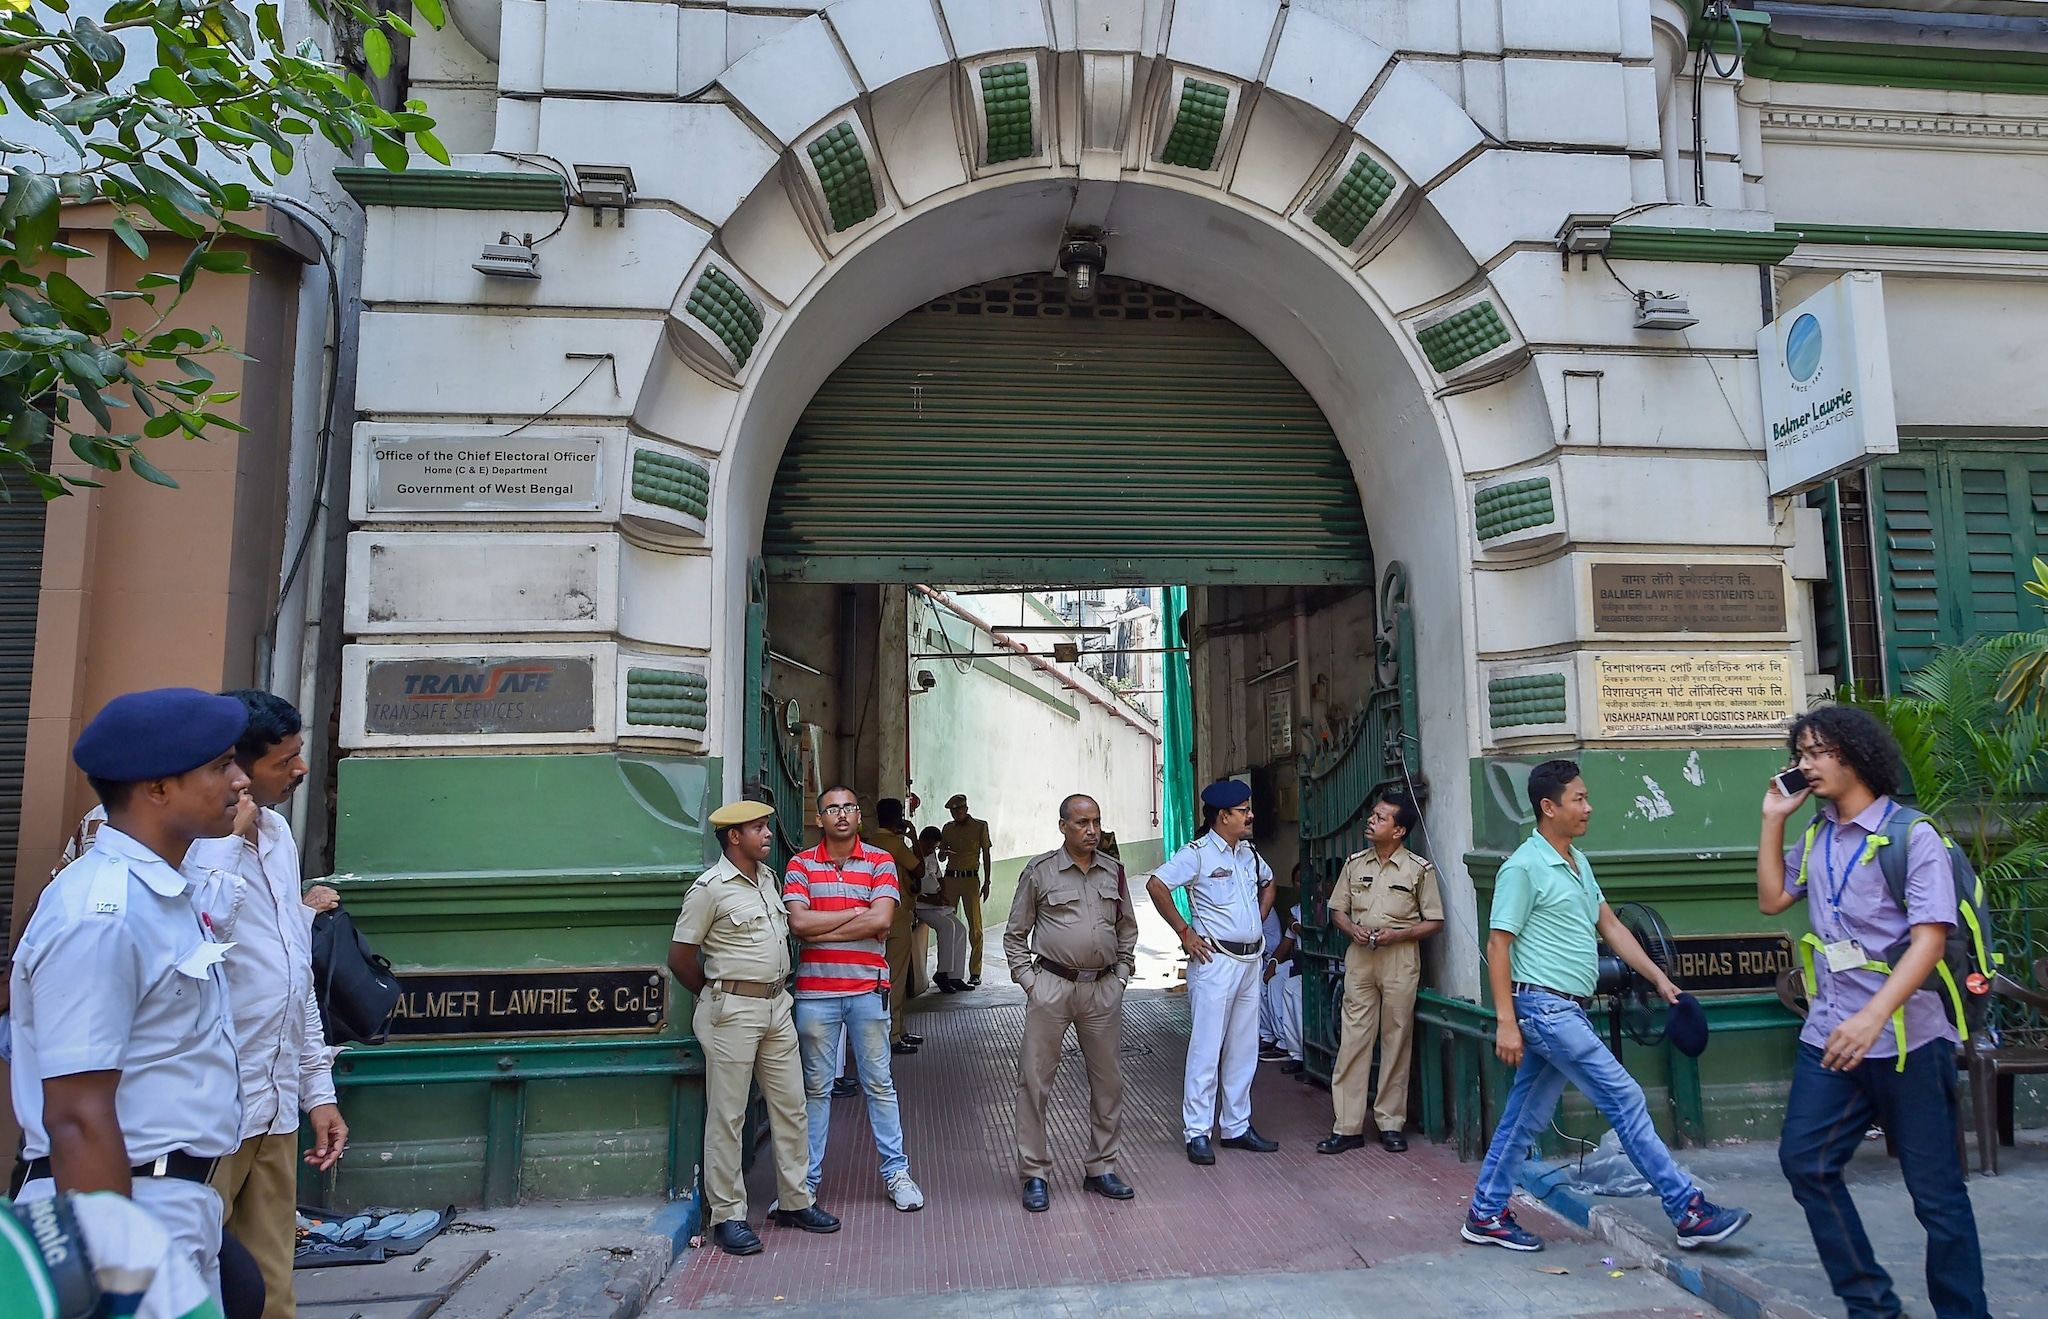 Police personnel stand guard in front of Election Commission Office in Kolkata, Saturday, May 11, 2019. (PTI Photo/Ashok Bhaumik)